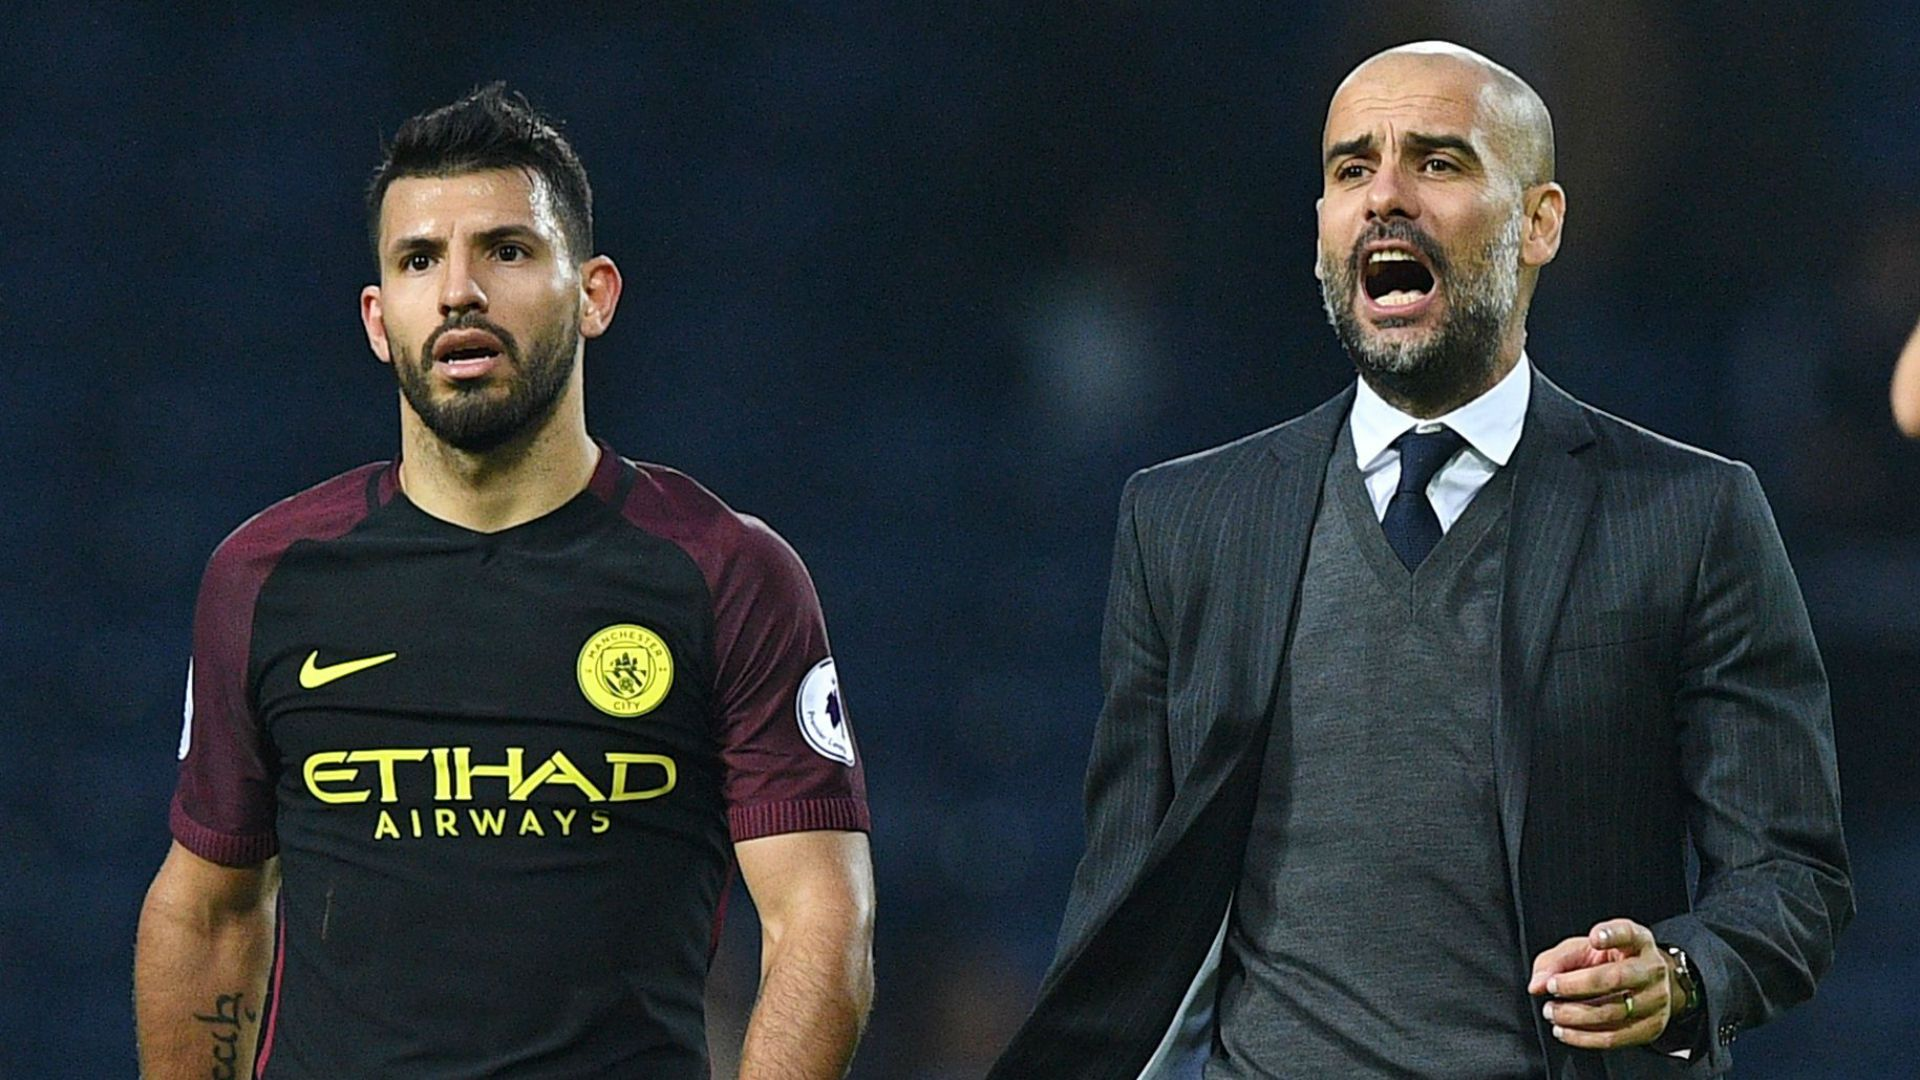 pep-guardiola-on-messi-aguero-comparison